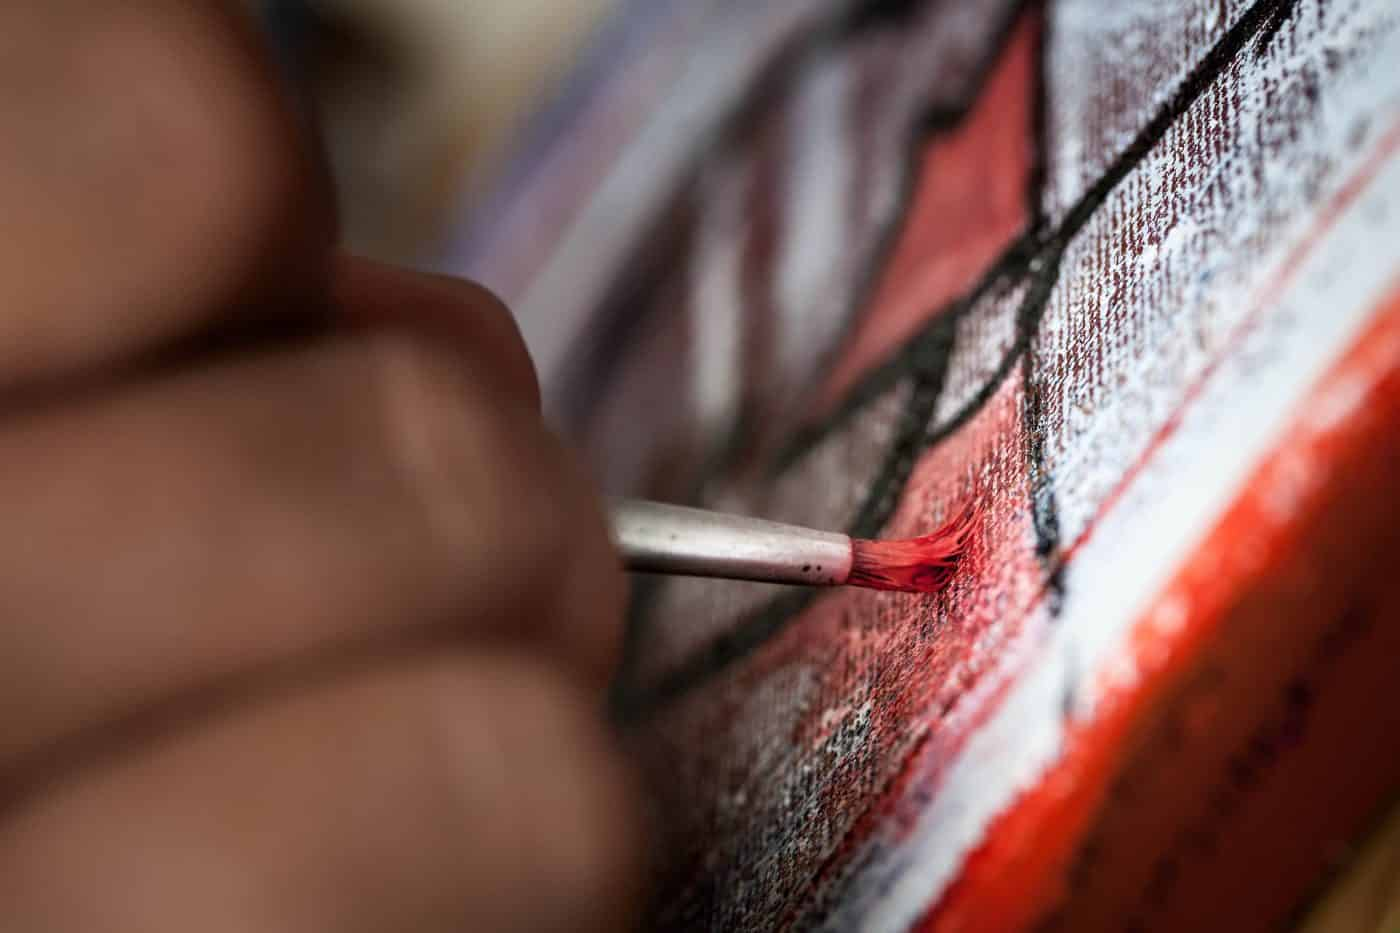 Kiistaaraq, a painter from Sisimiut in Greenland, at work - by Mads Pihl